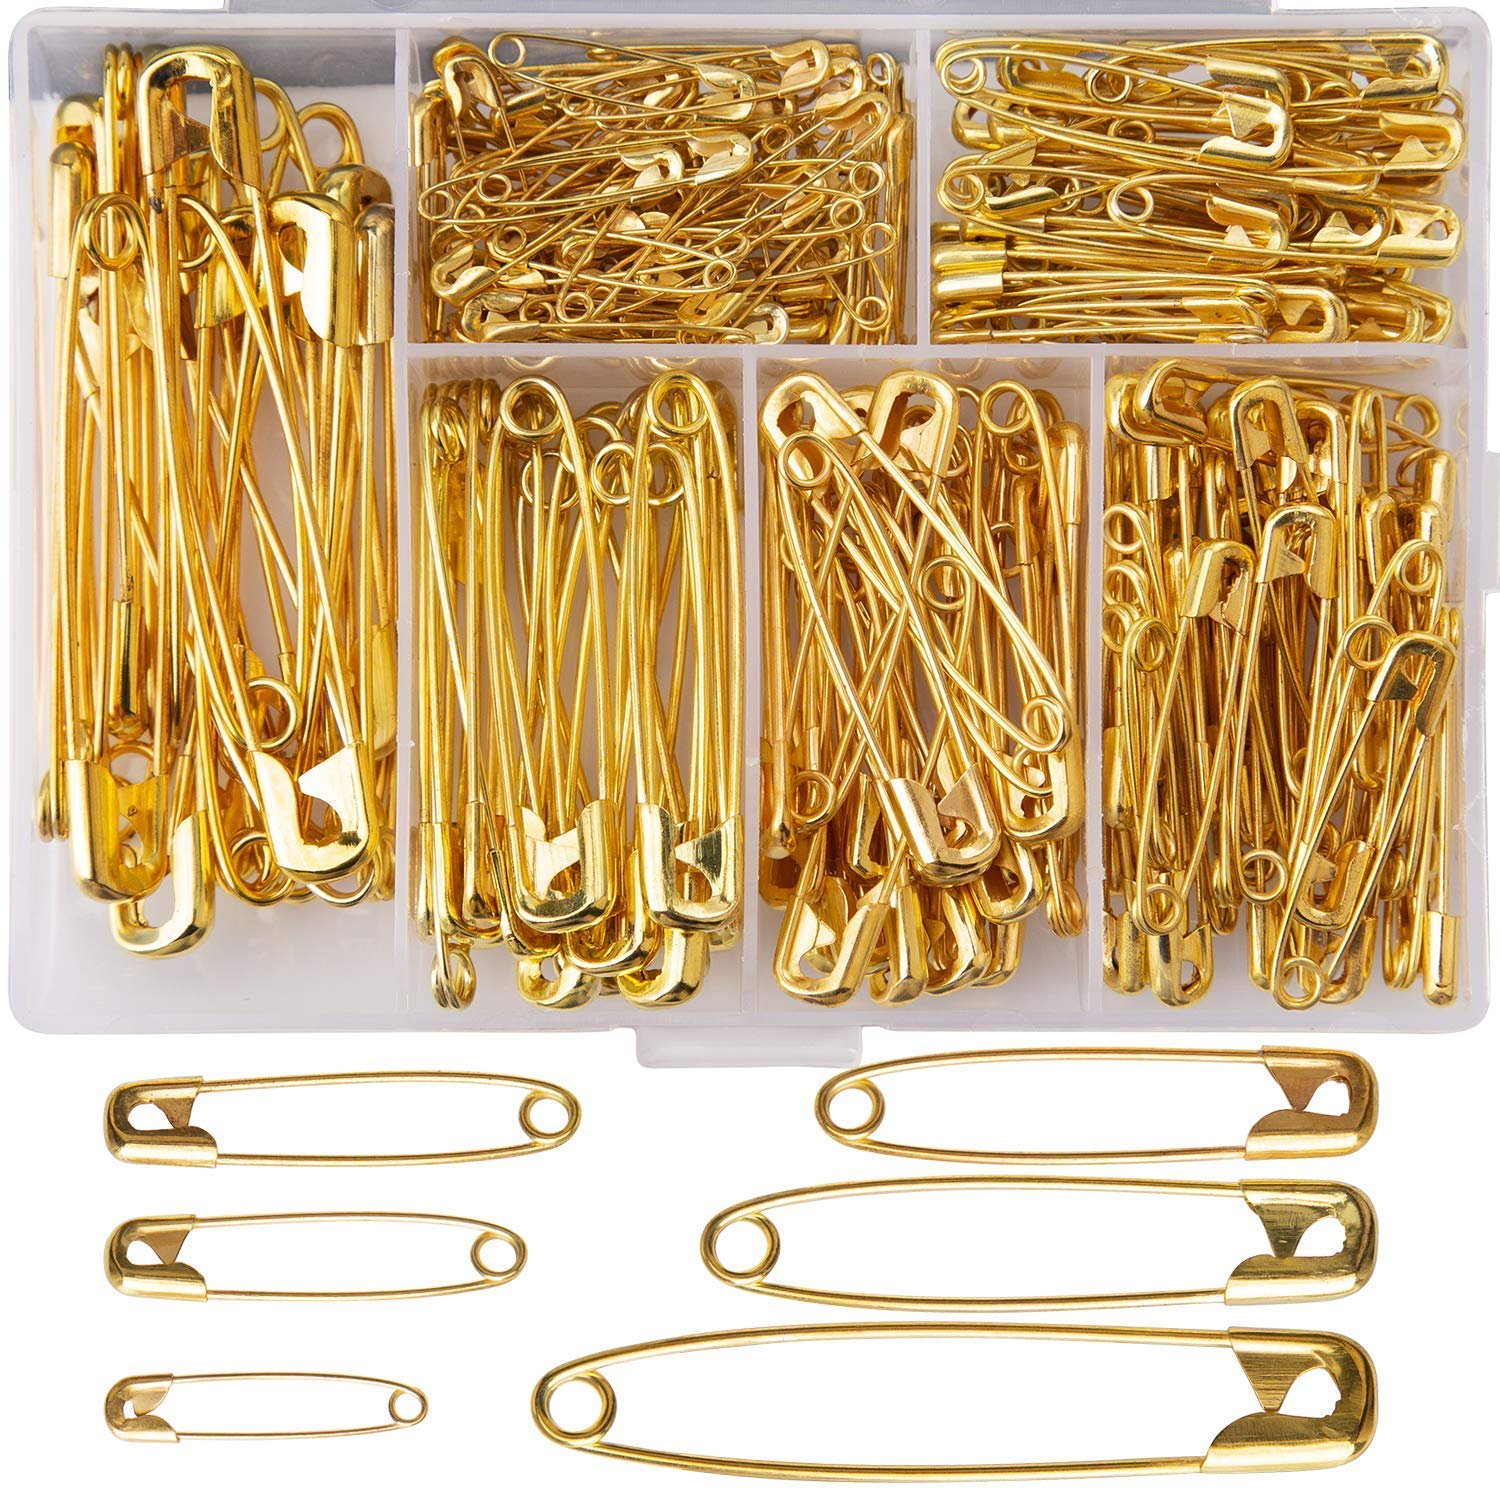 100 Small Tiny Gold Metal Steel Mini Safety Pins 2cm 23mm